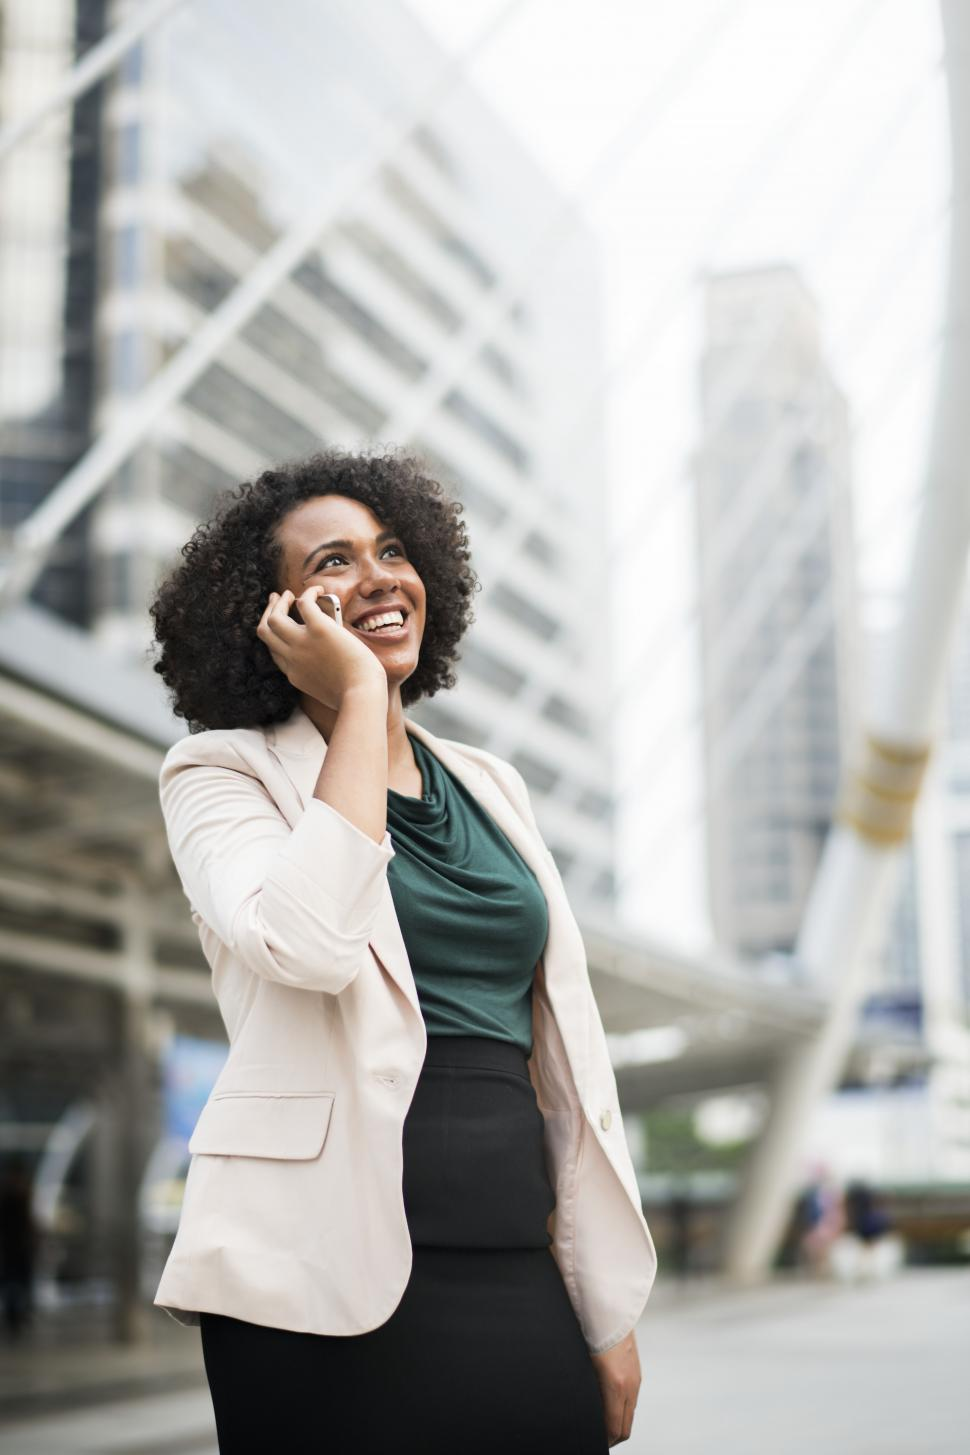 Download Free Stock Photo of A young woman outside in a city, speaking on a mobile phone